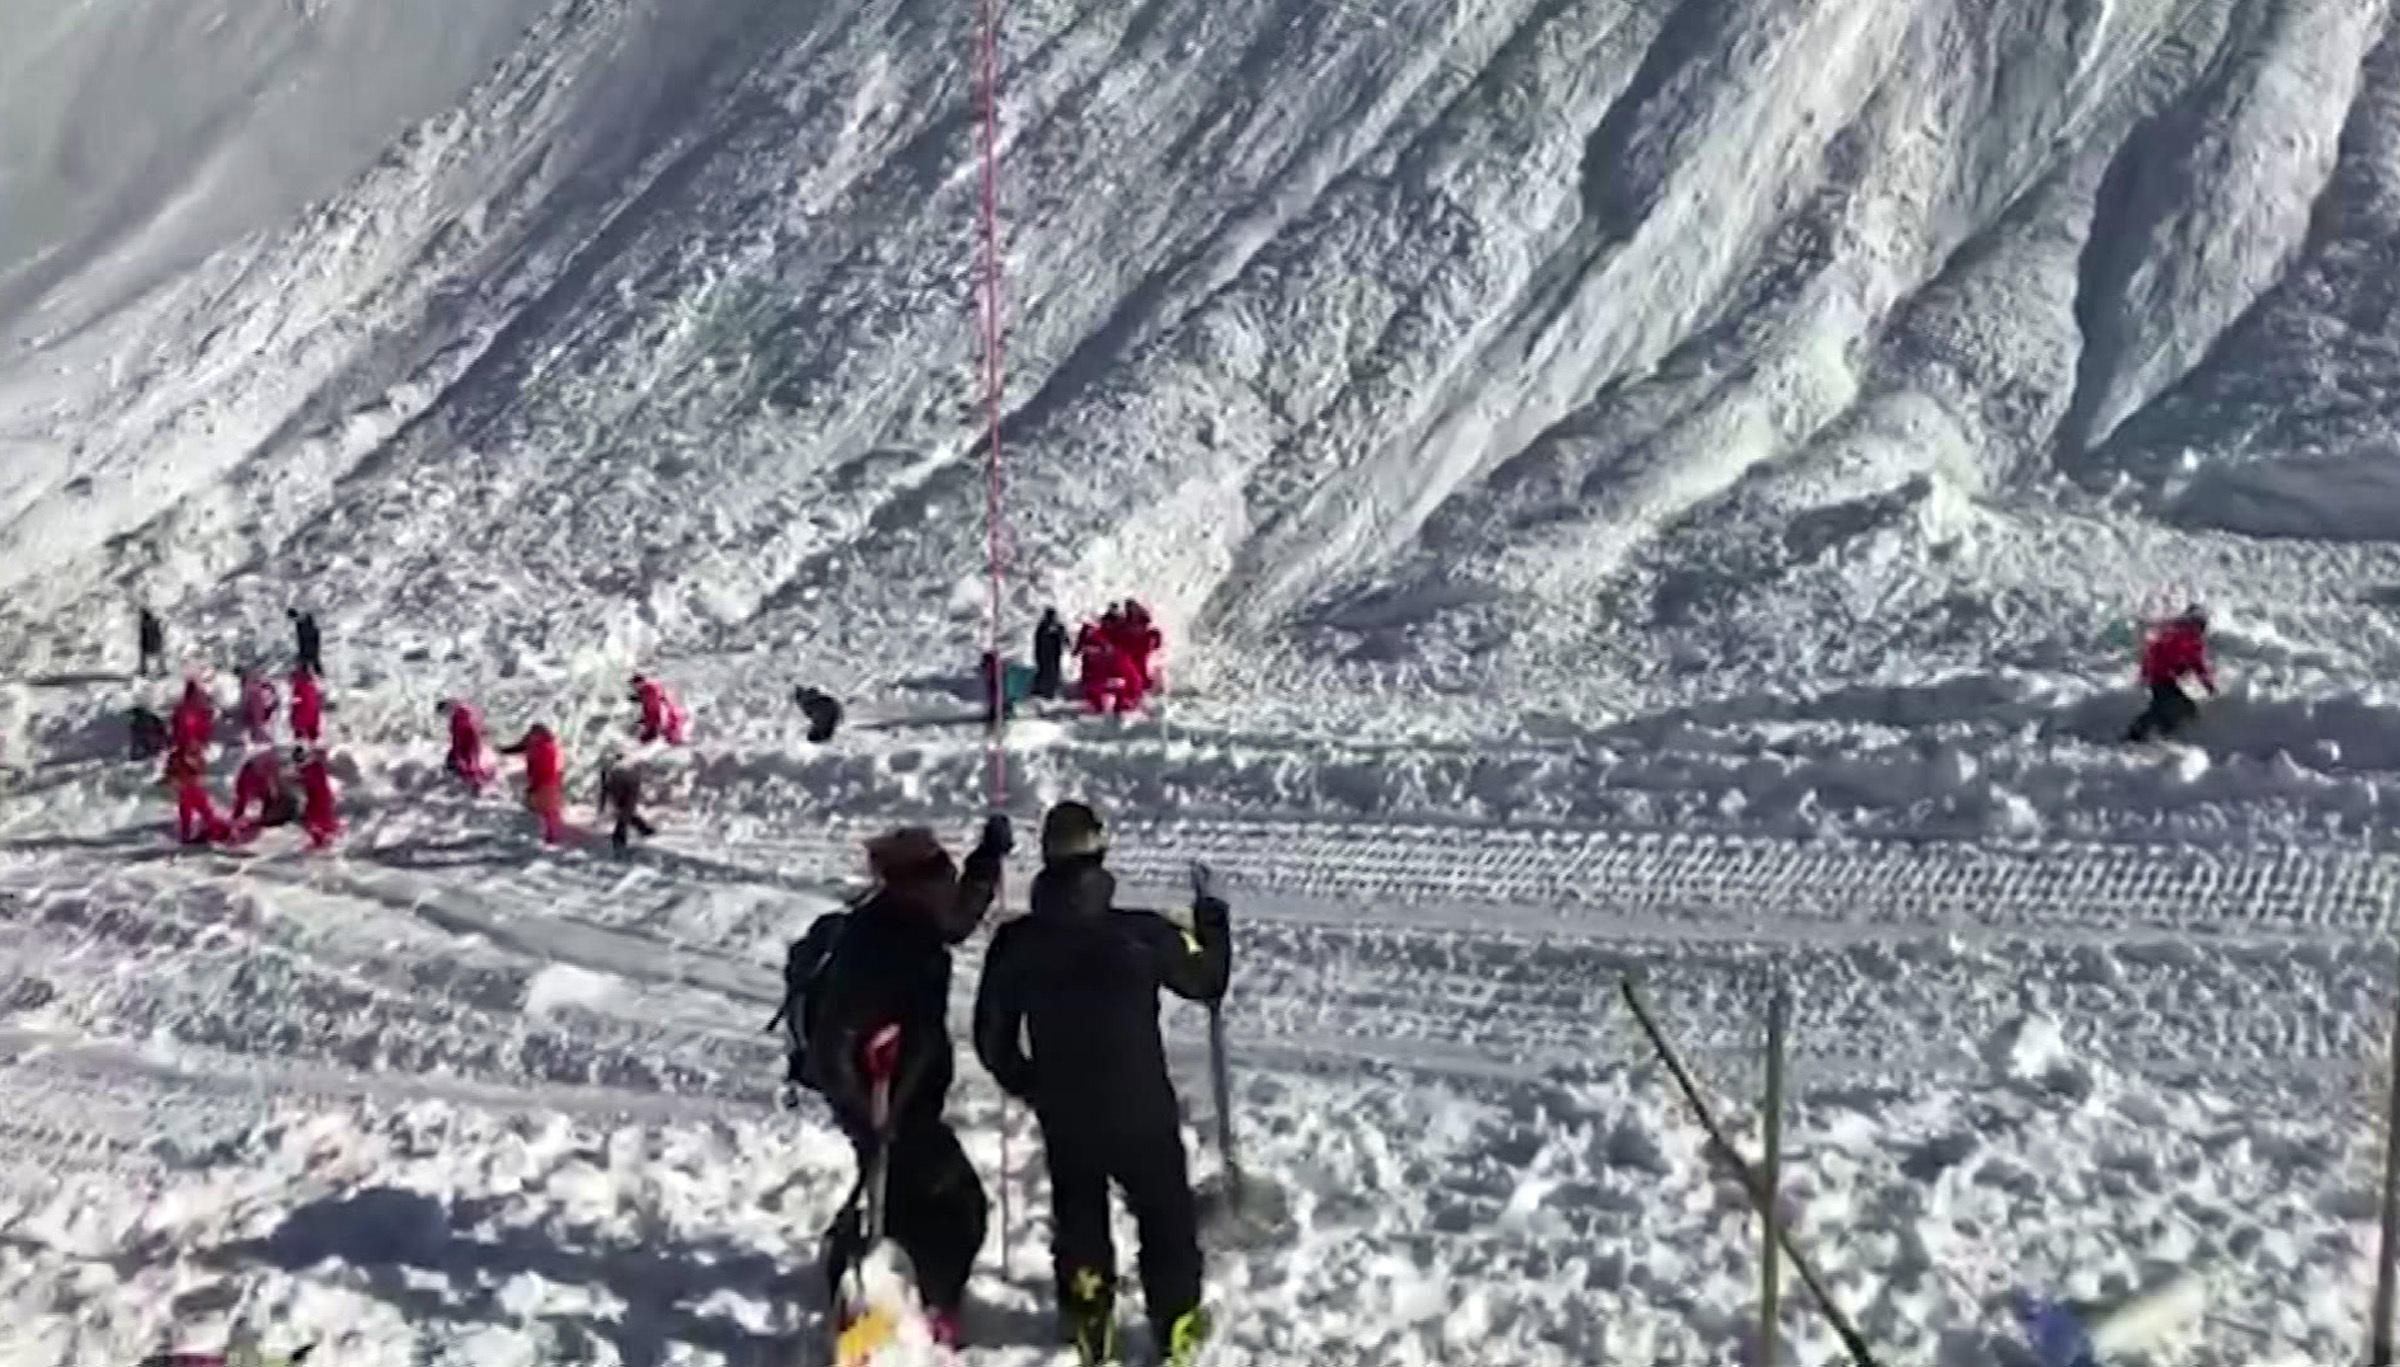 french alps avalanche kills, traps skiers near tignes resort - cbs news